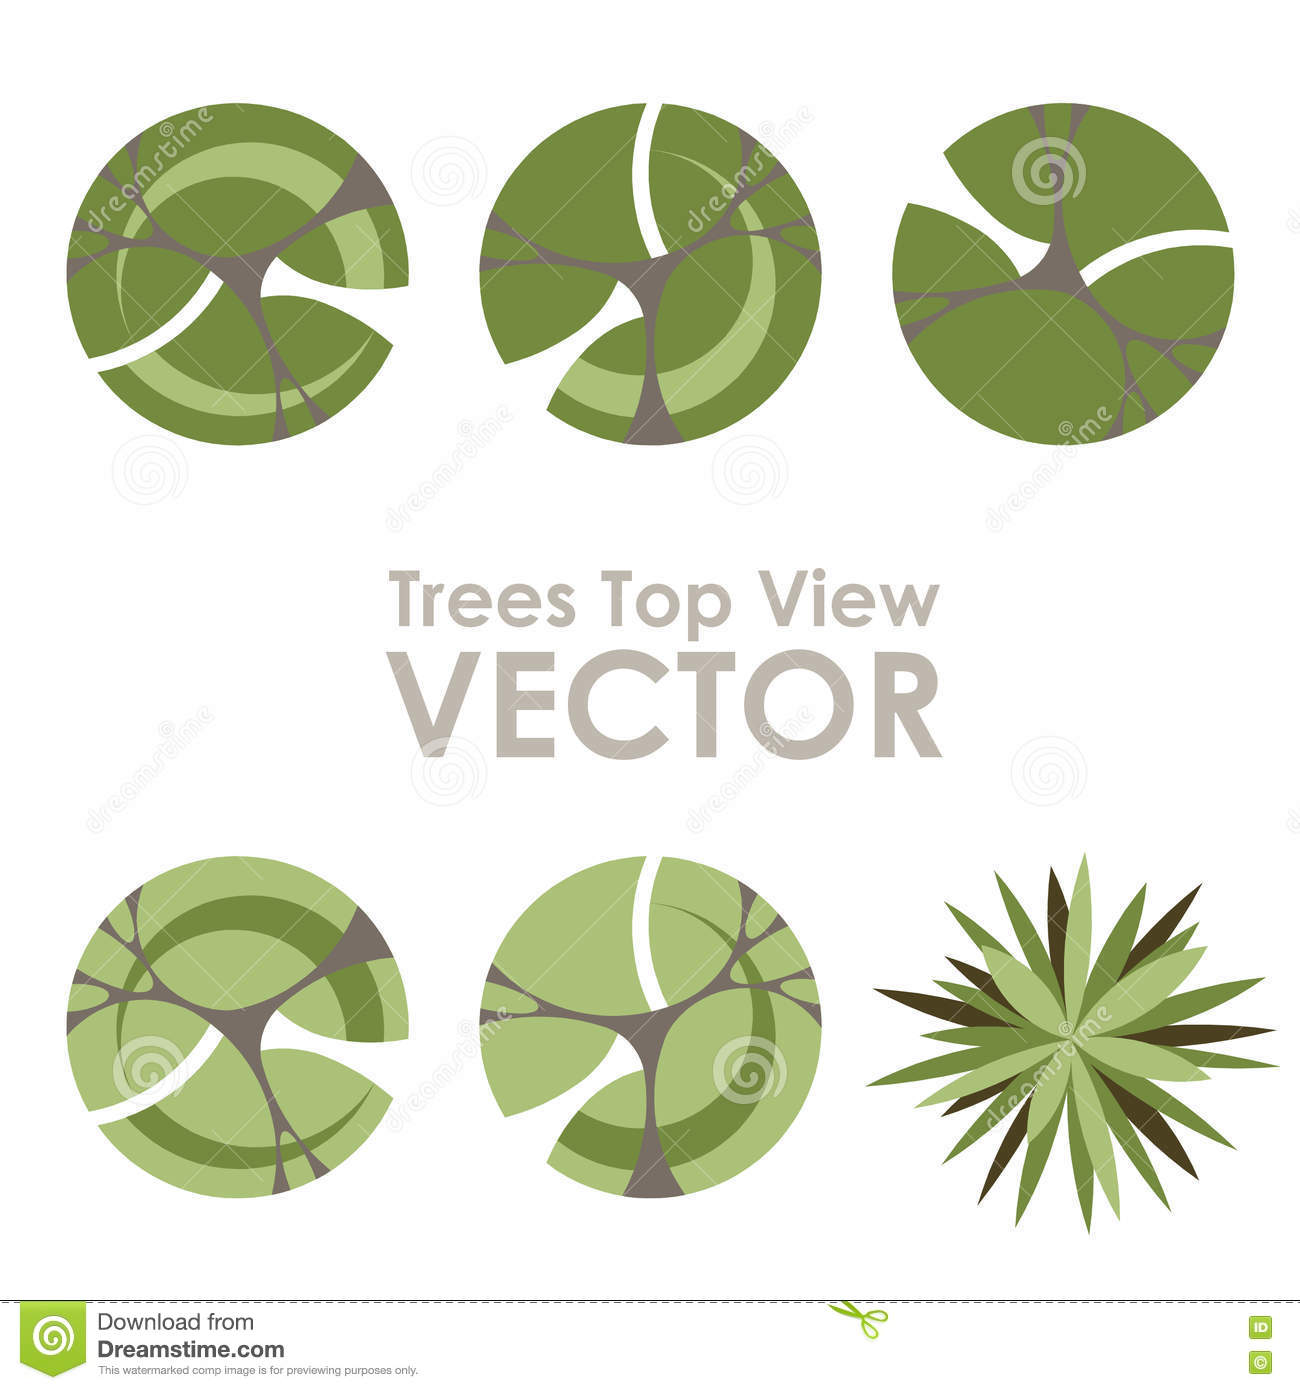 Trees top view vector icons